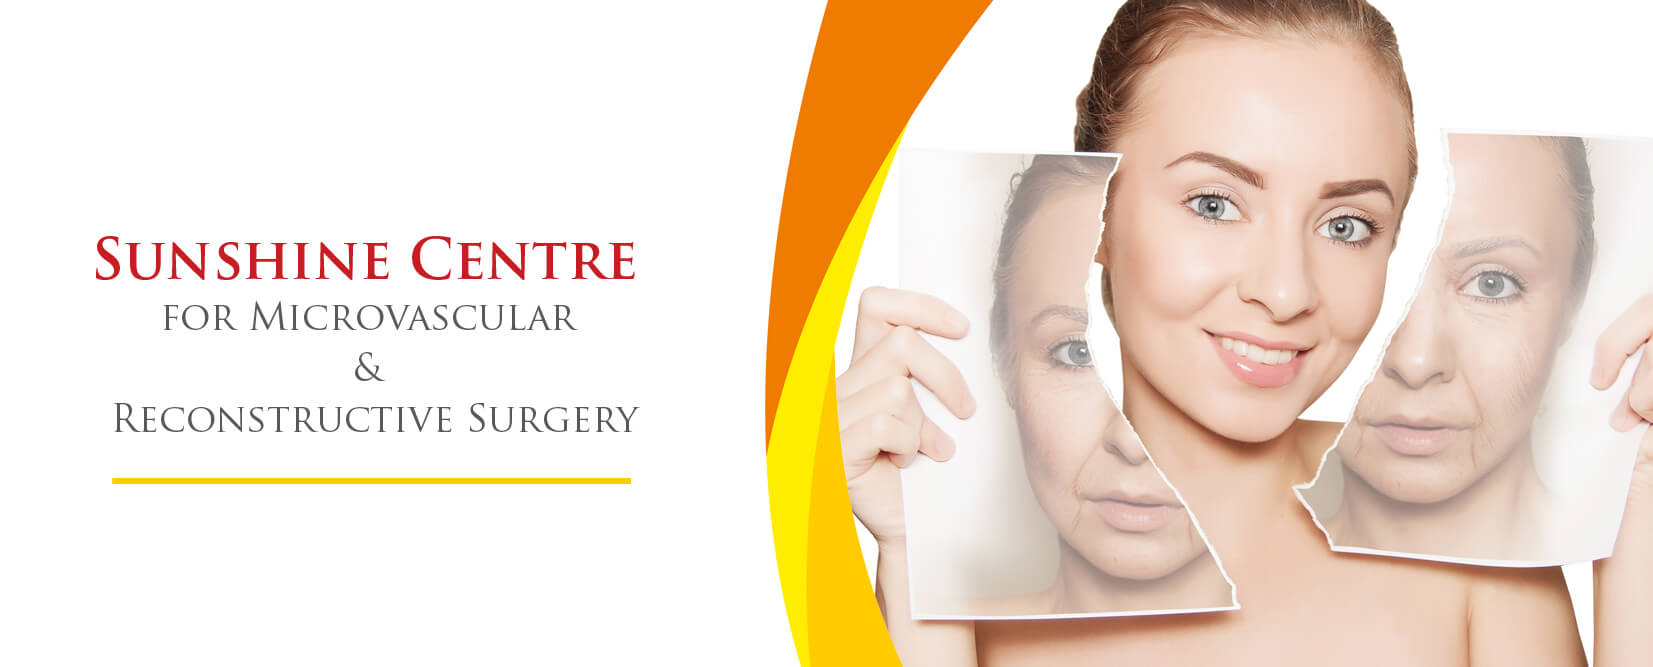 Sunshine Centre for Microvascular Reconstructive Surgery Banner.